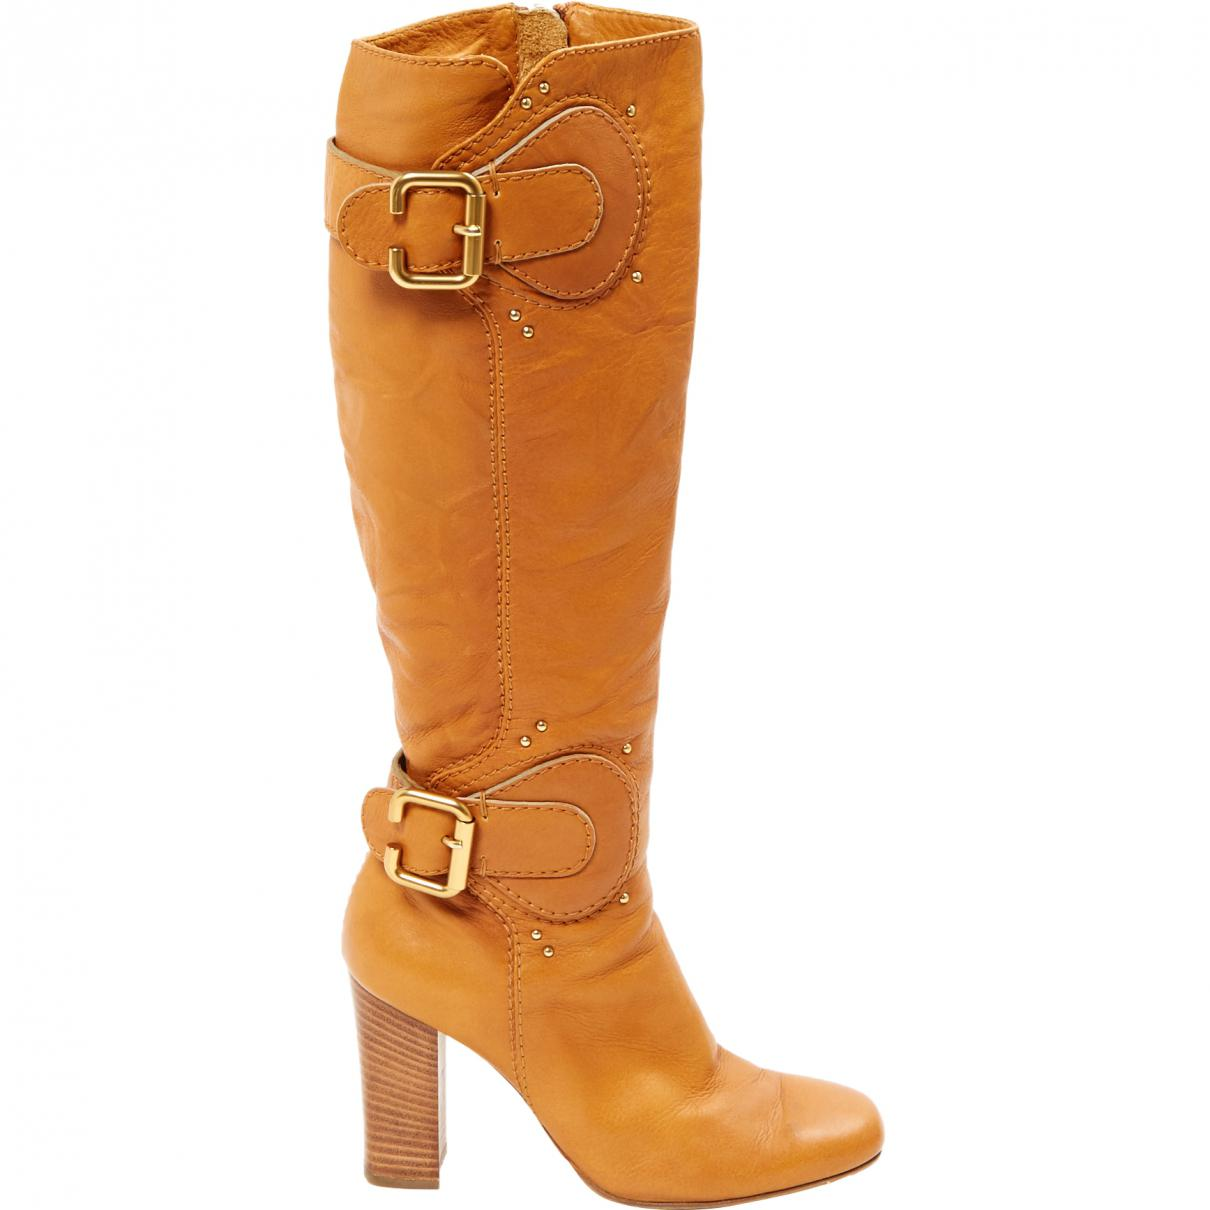 Cheap Sale Pictures With Credit Card For Sale Pre-owned - Leather riding boots Chlo Buy Cheap 2018 New Best Seller Cheap Online ZBjq3J5